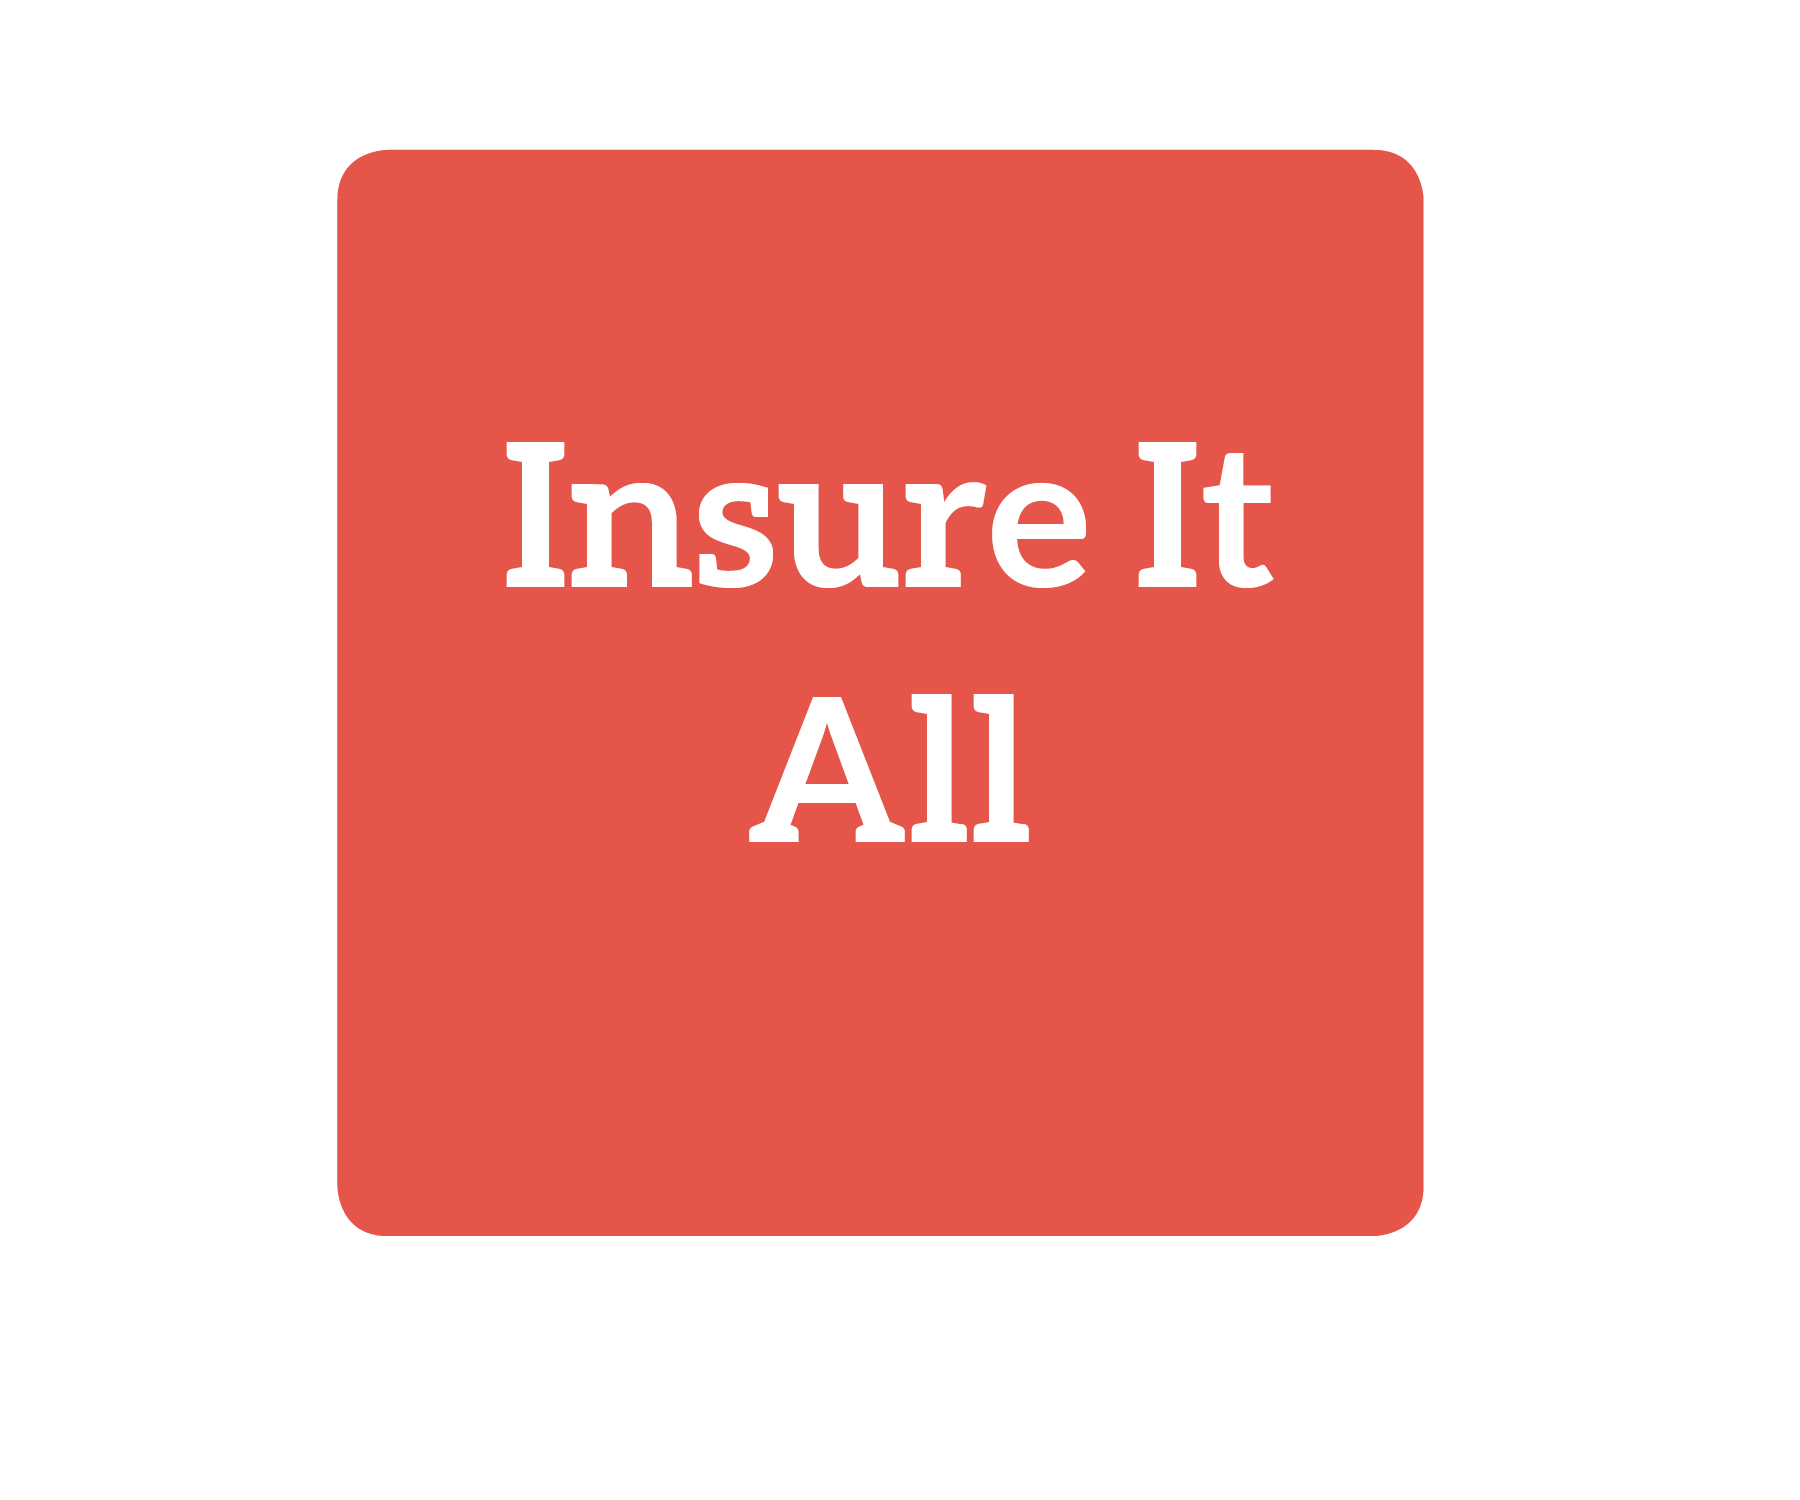 Insure it All